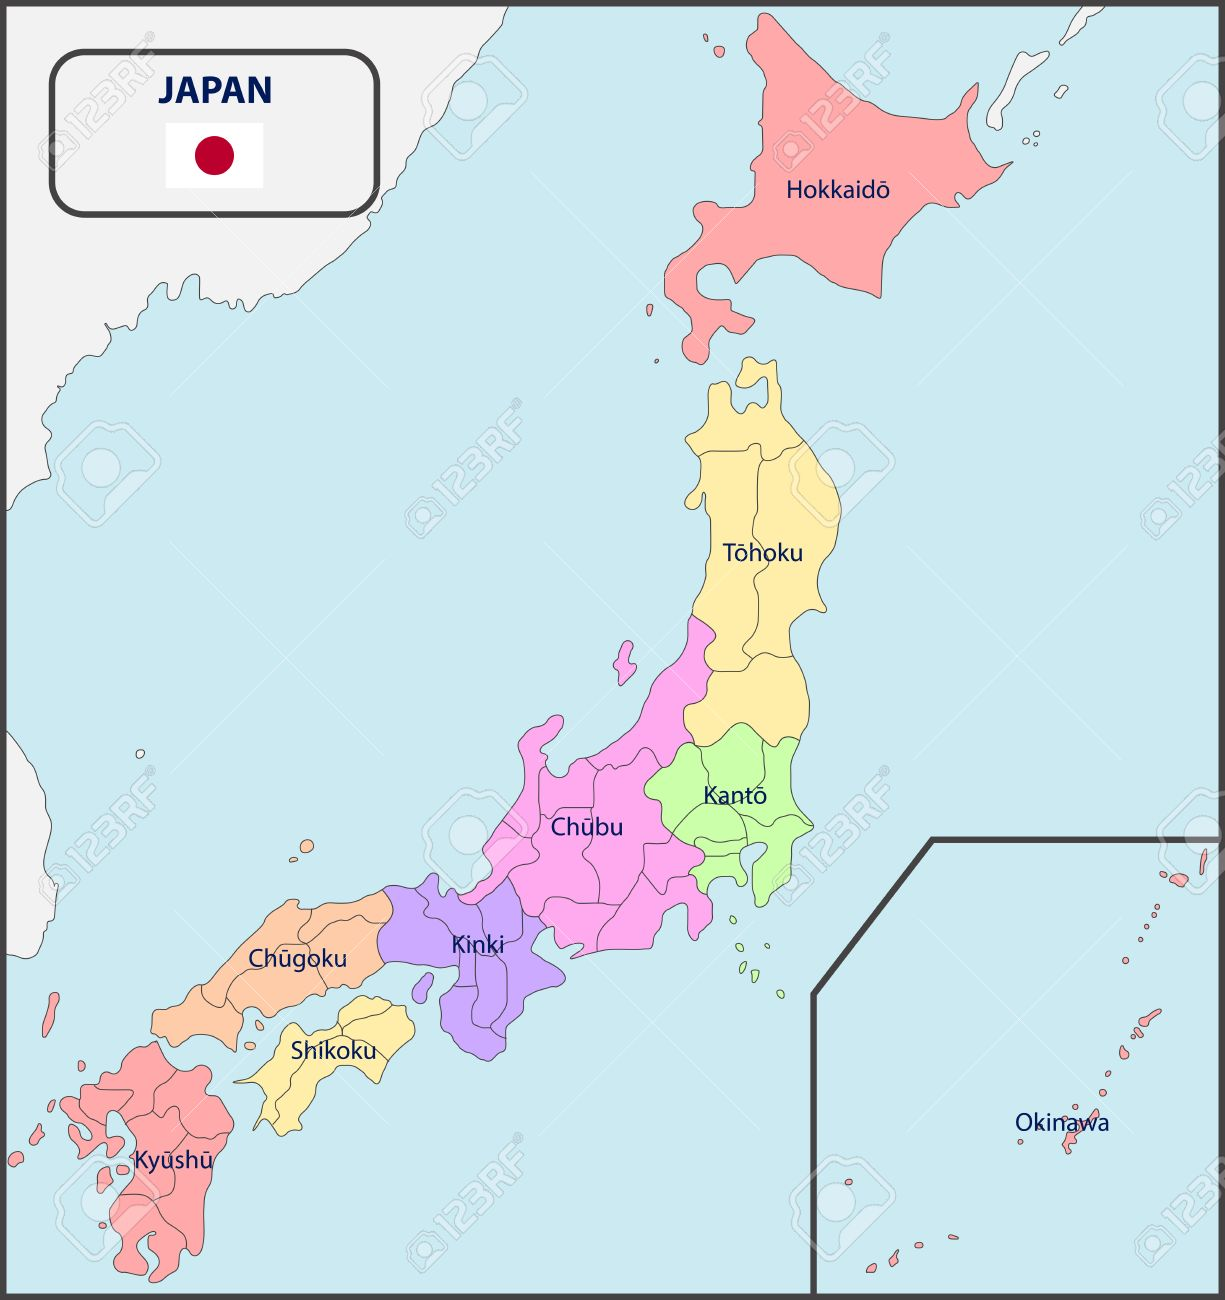 Political Map Of Japan With Names Royalty Free Cliparts, Vectors